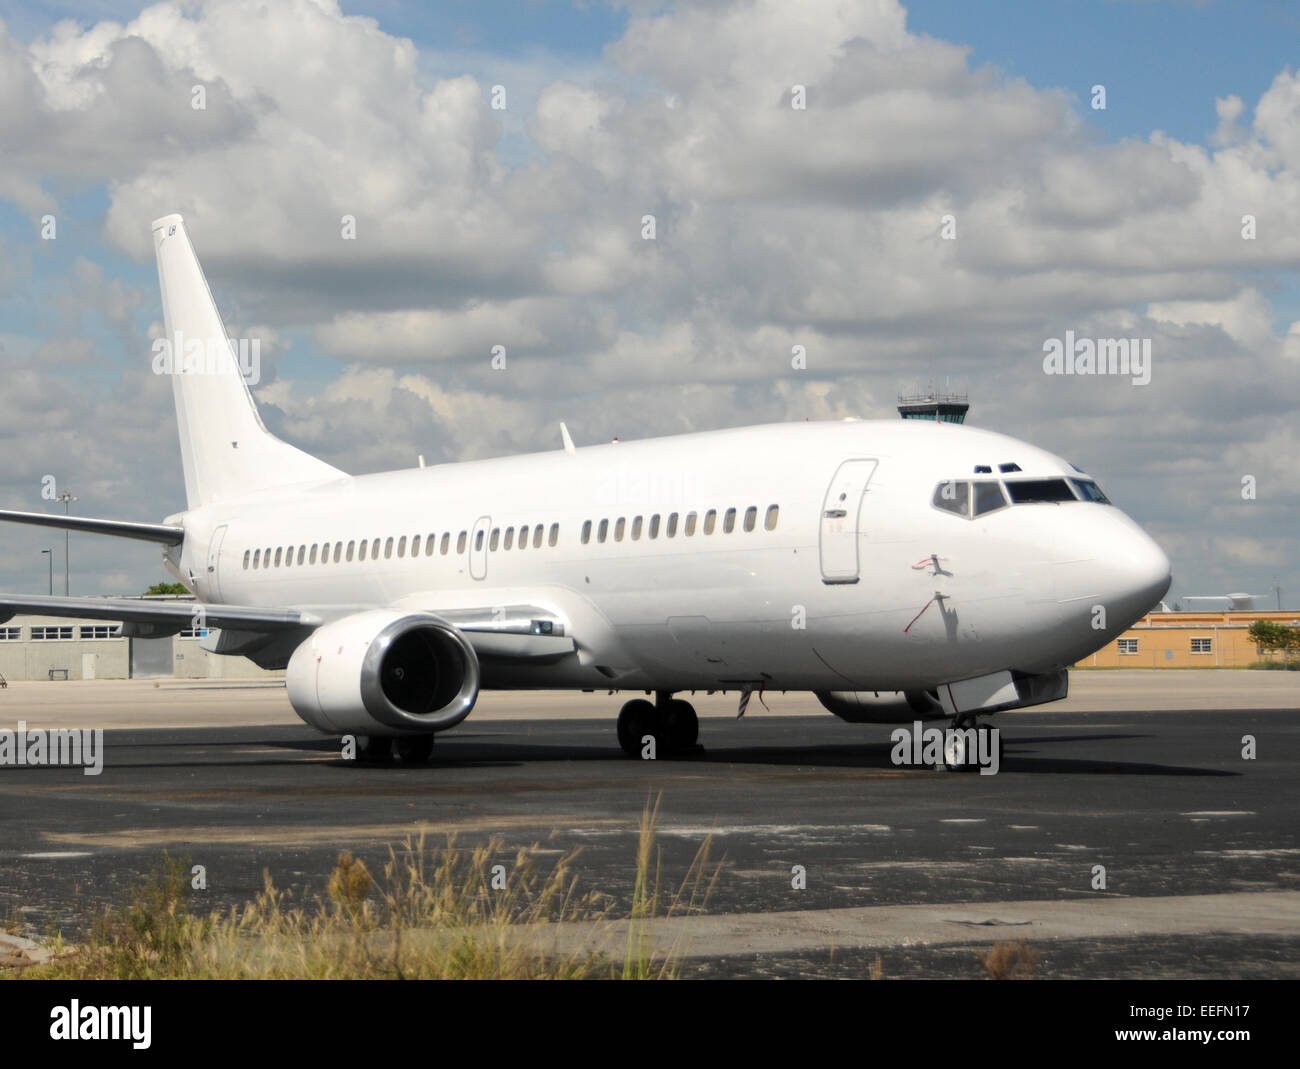 Modern passenger jet airplane in unmarked white paint Boeing 737 - Stock Image